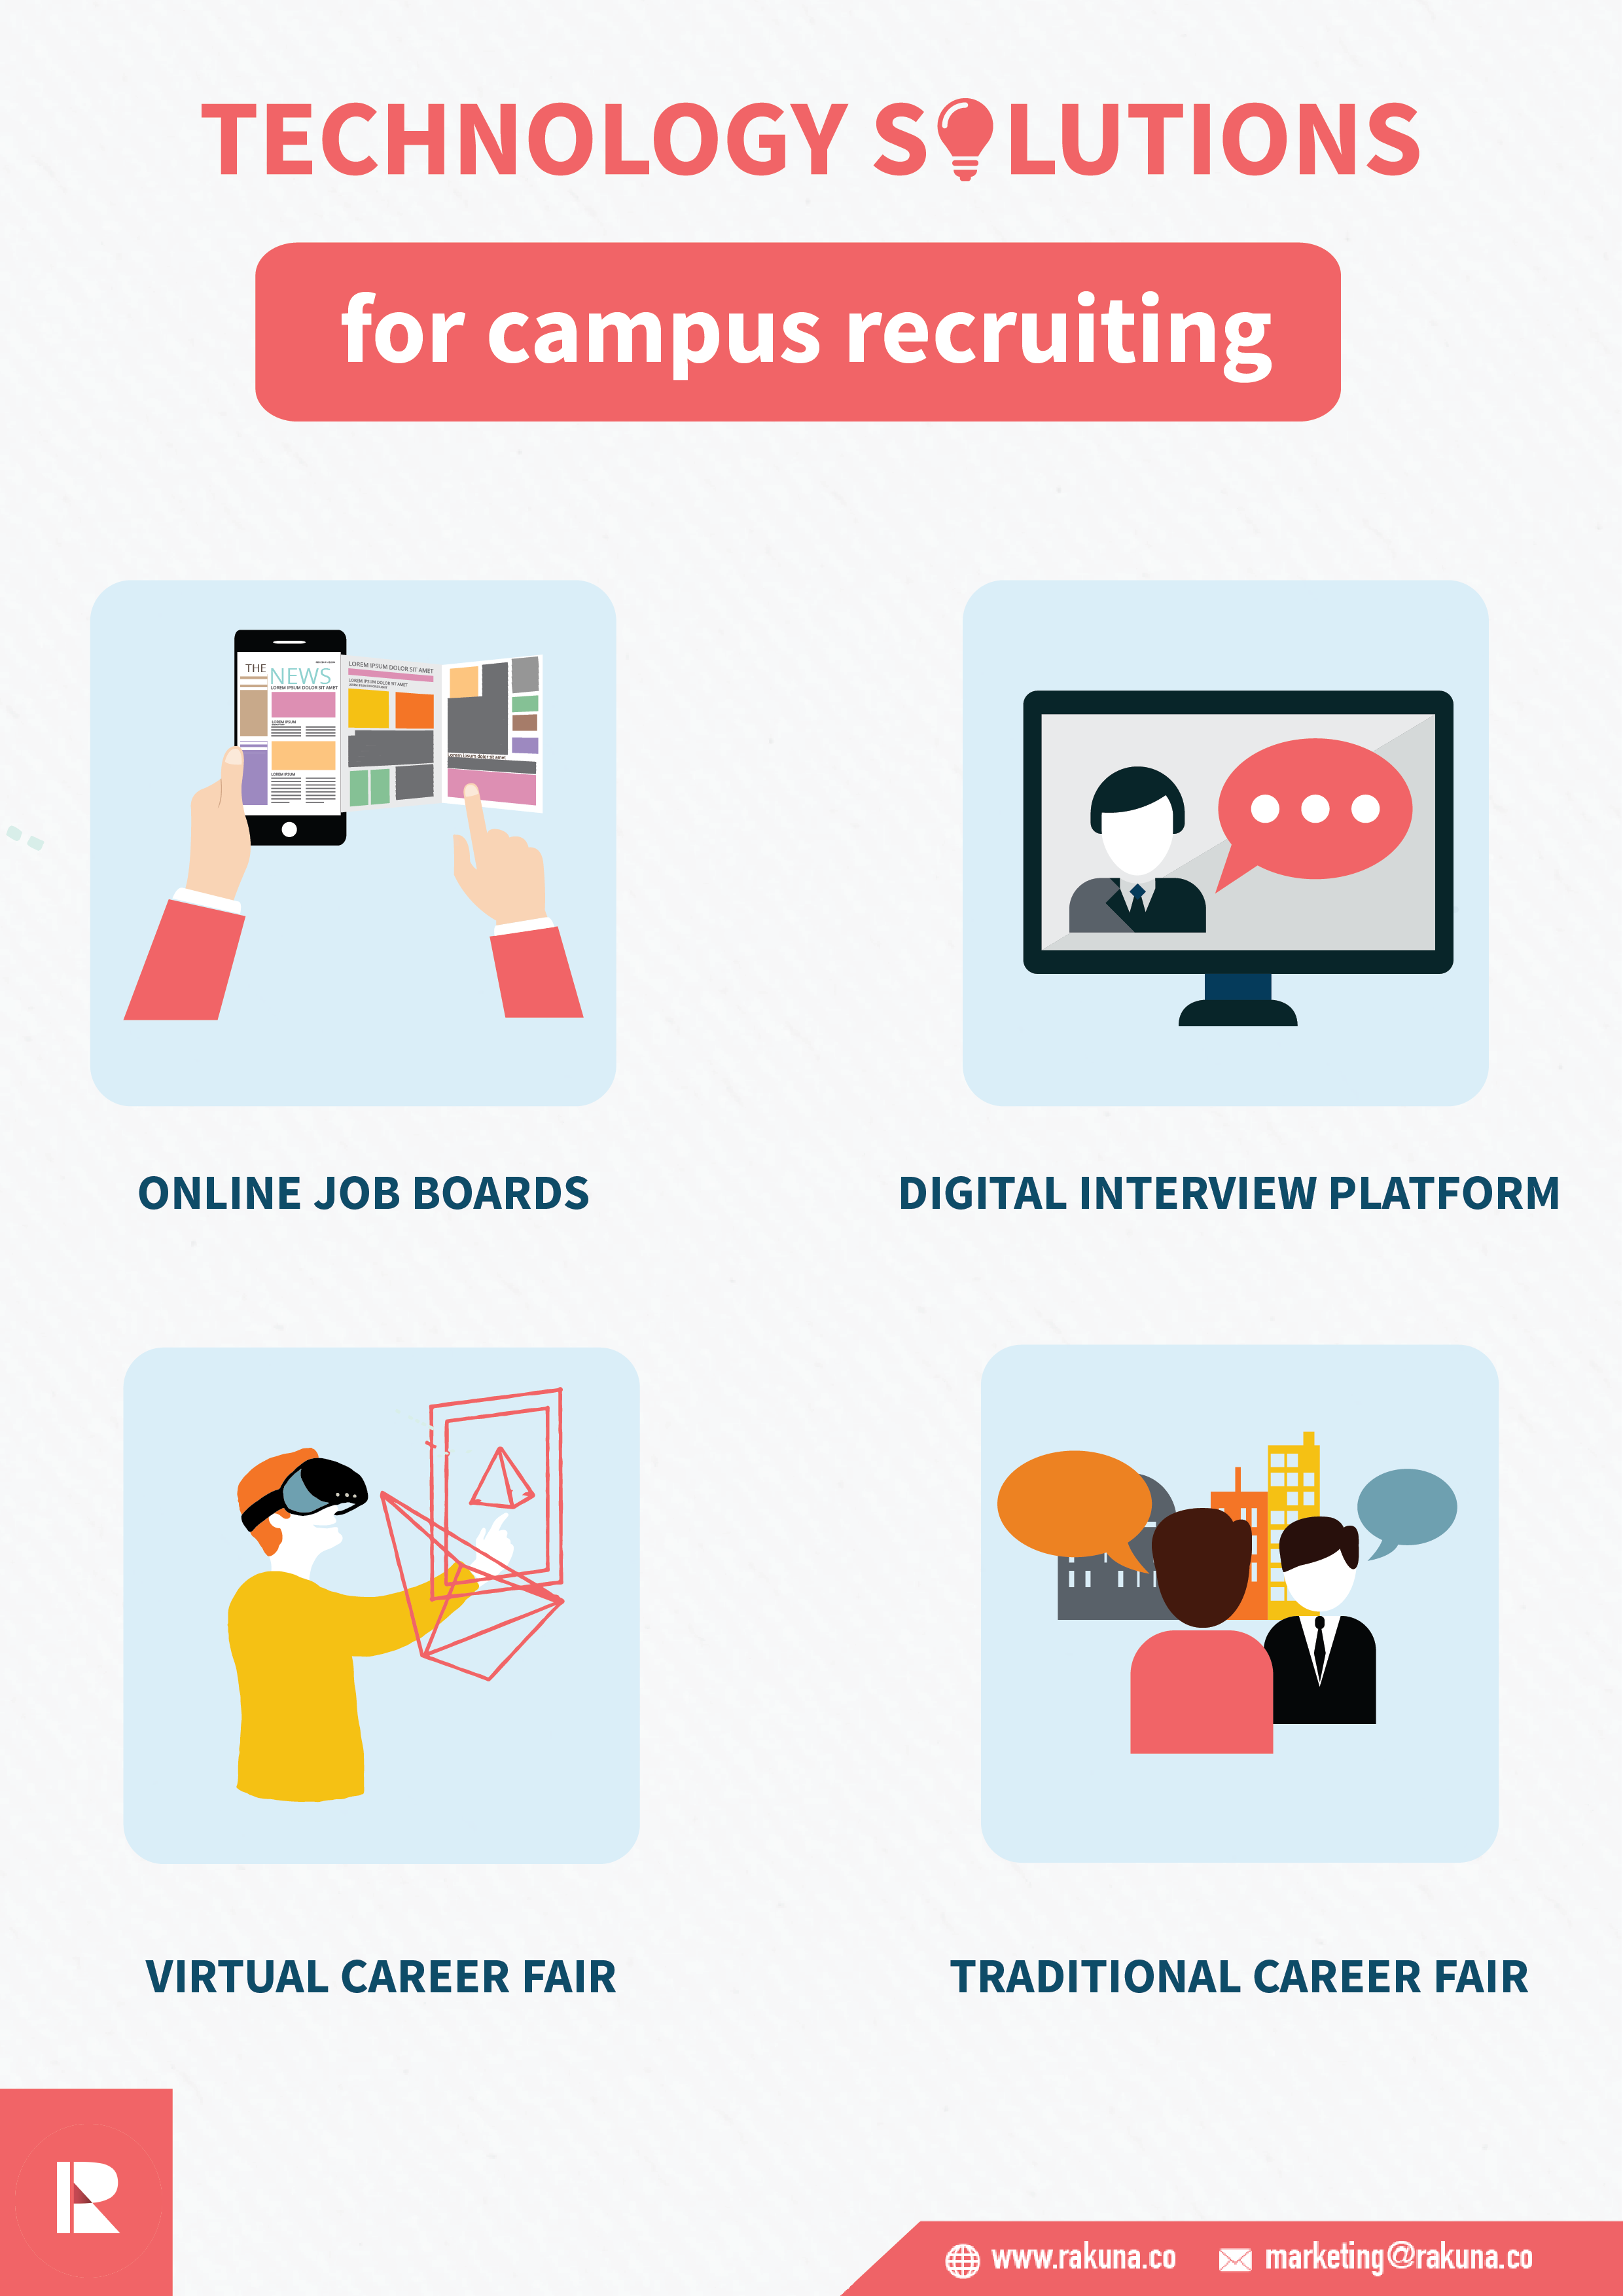 Technology solution for campus recruiting